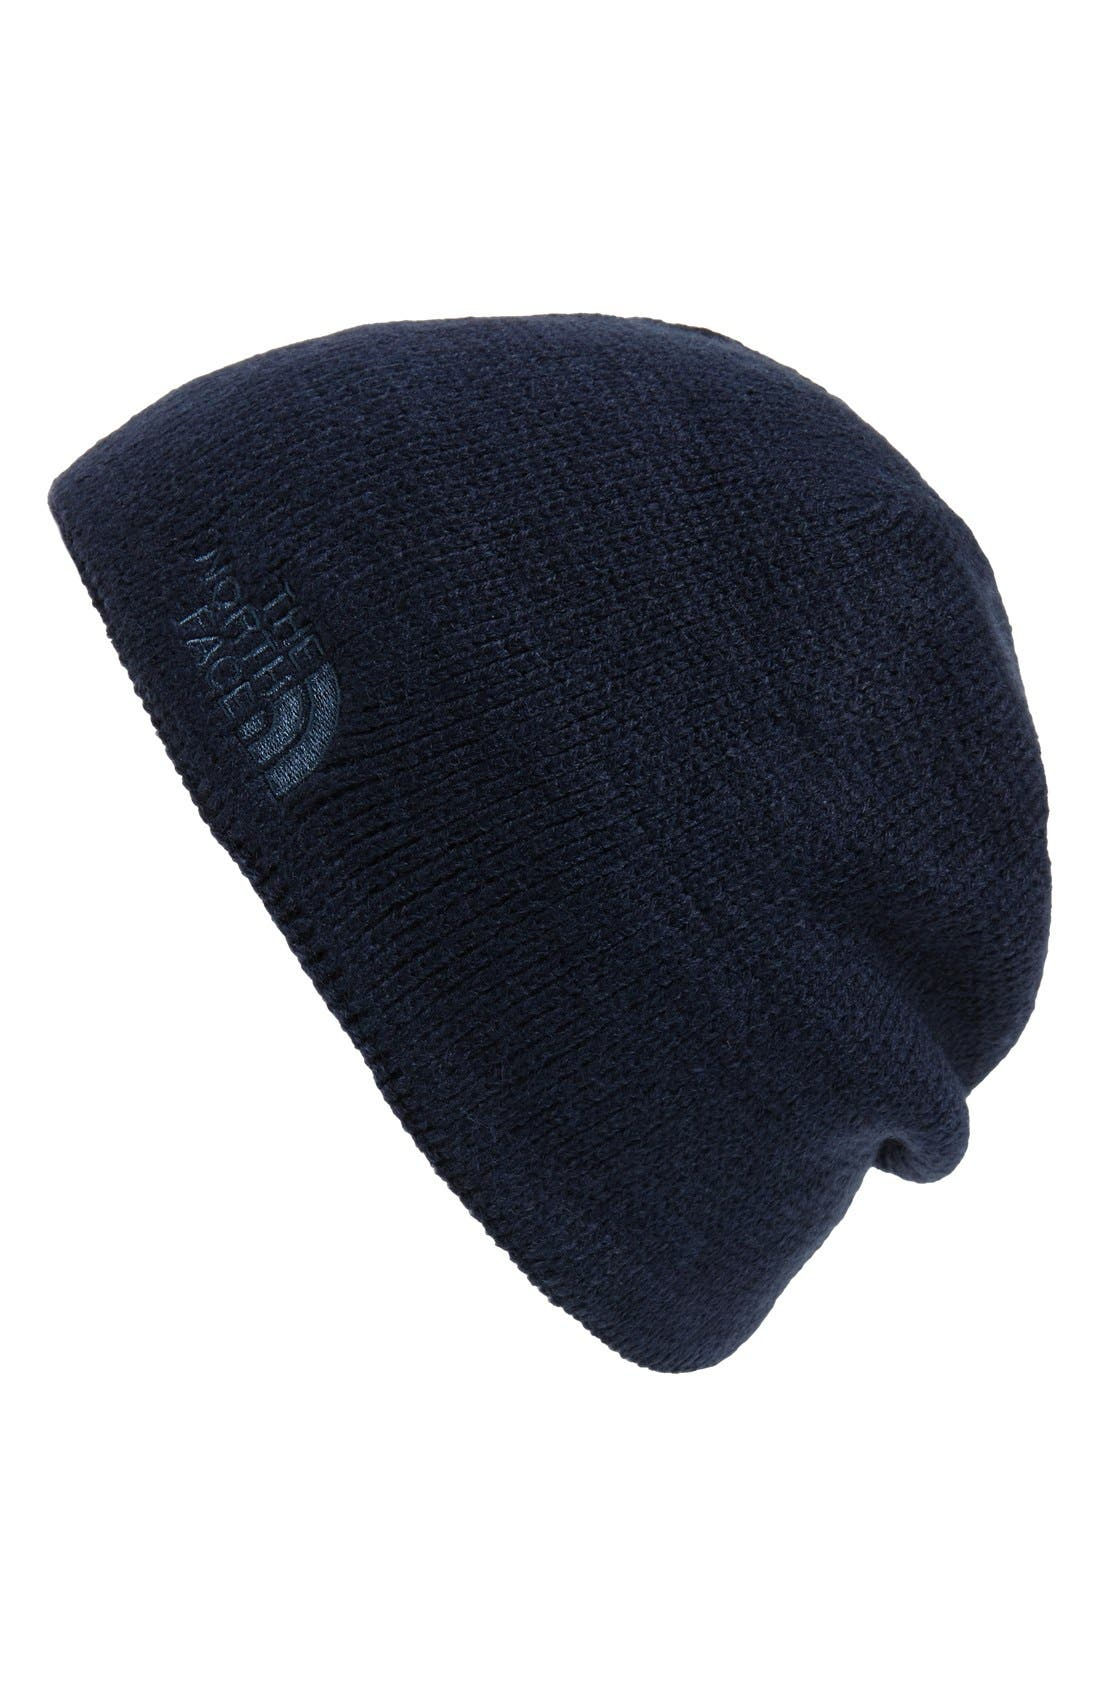 'Bones' Microfleece Beanie,                             Main thumbnail 10, color,